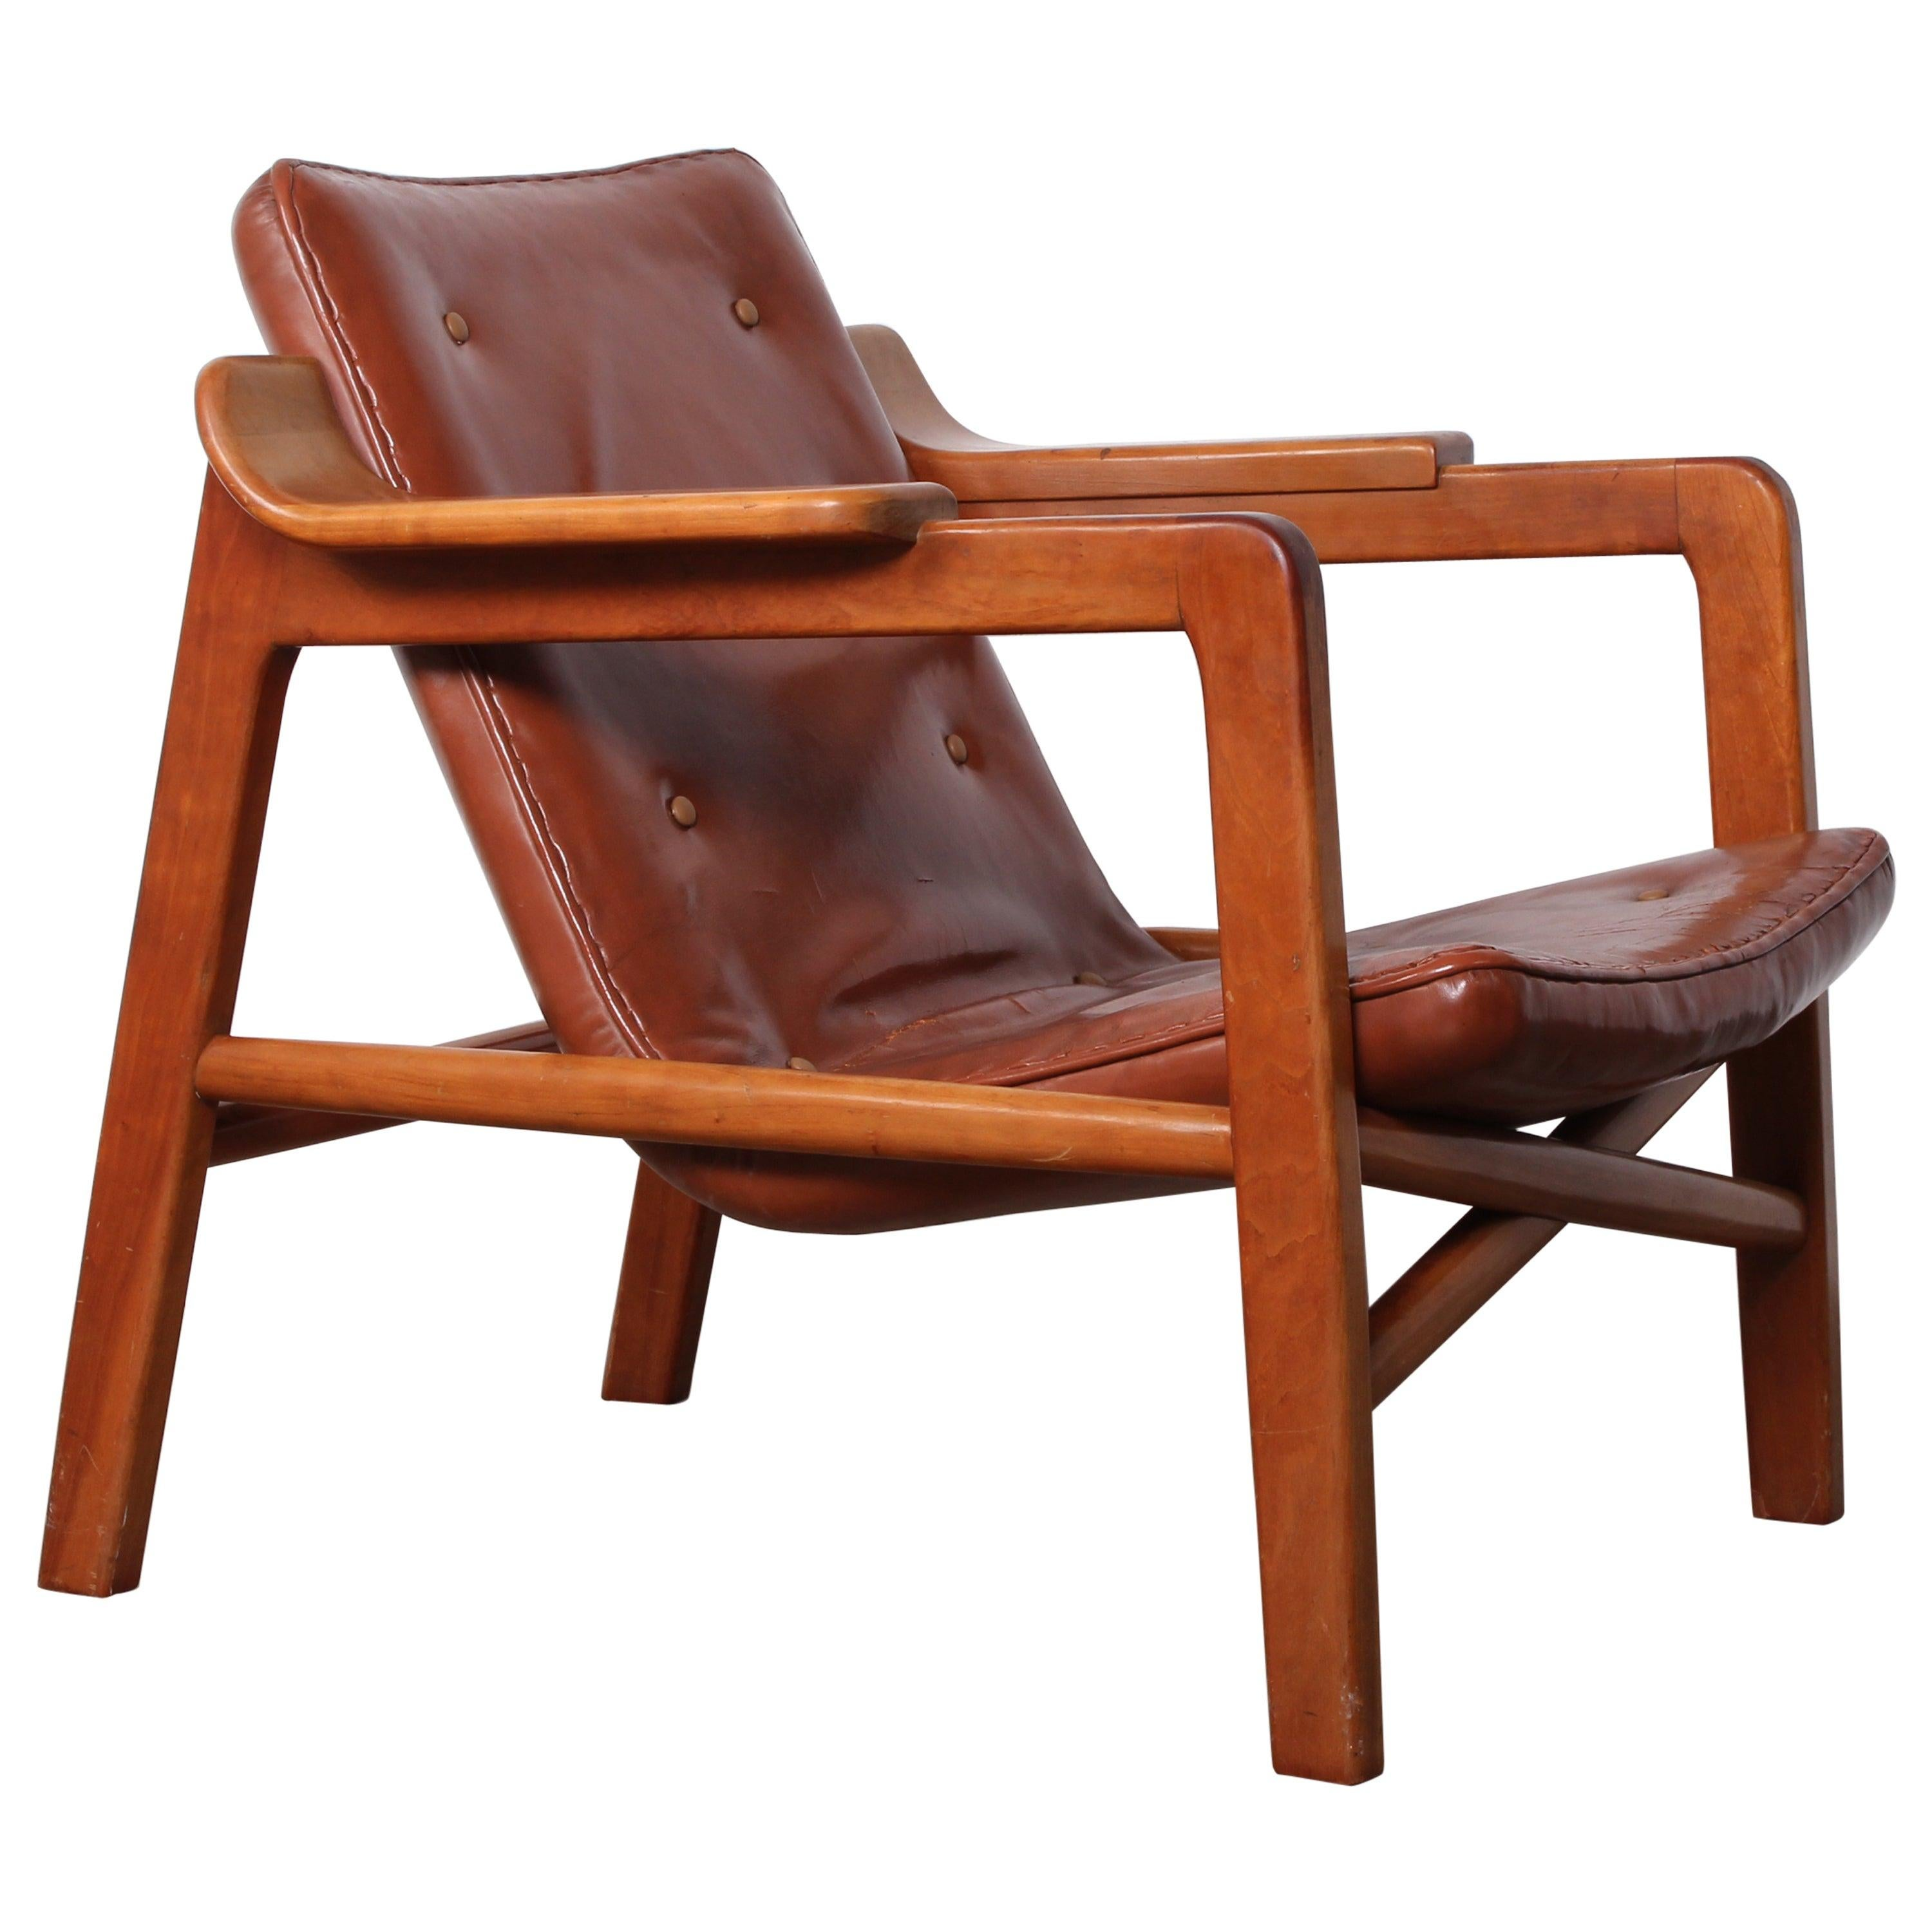 Tove & Edvard Kindt-Larsen 'Fireplace' Lounge Chair in Original Leather